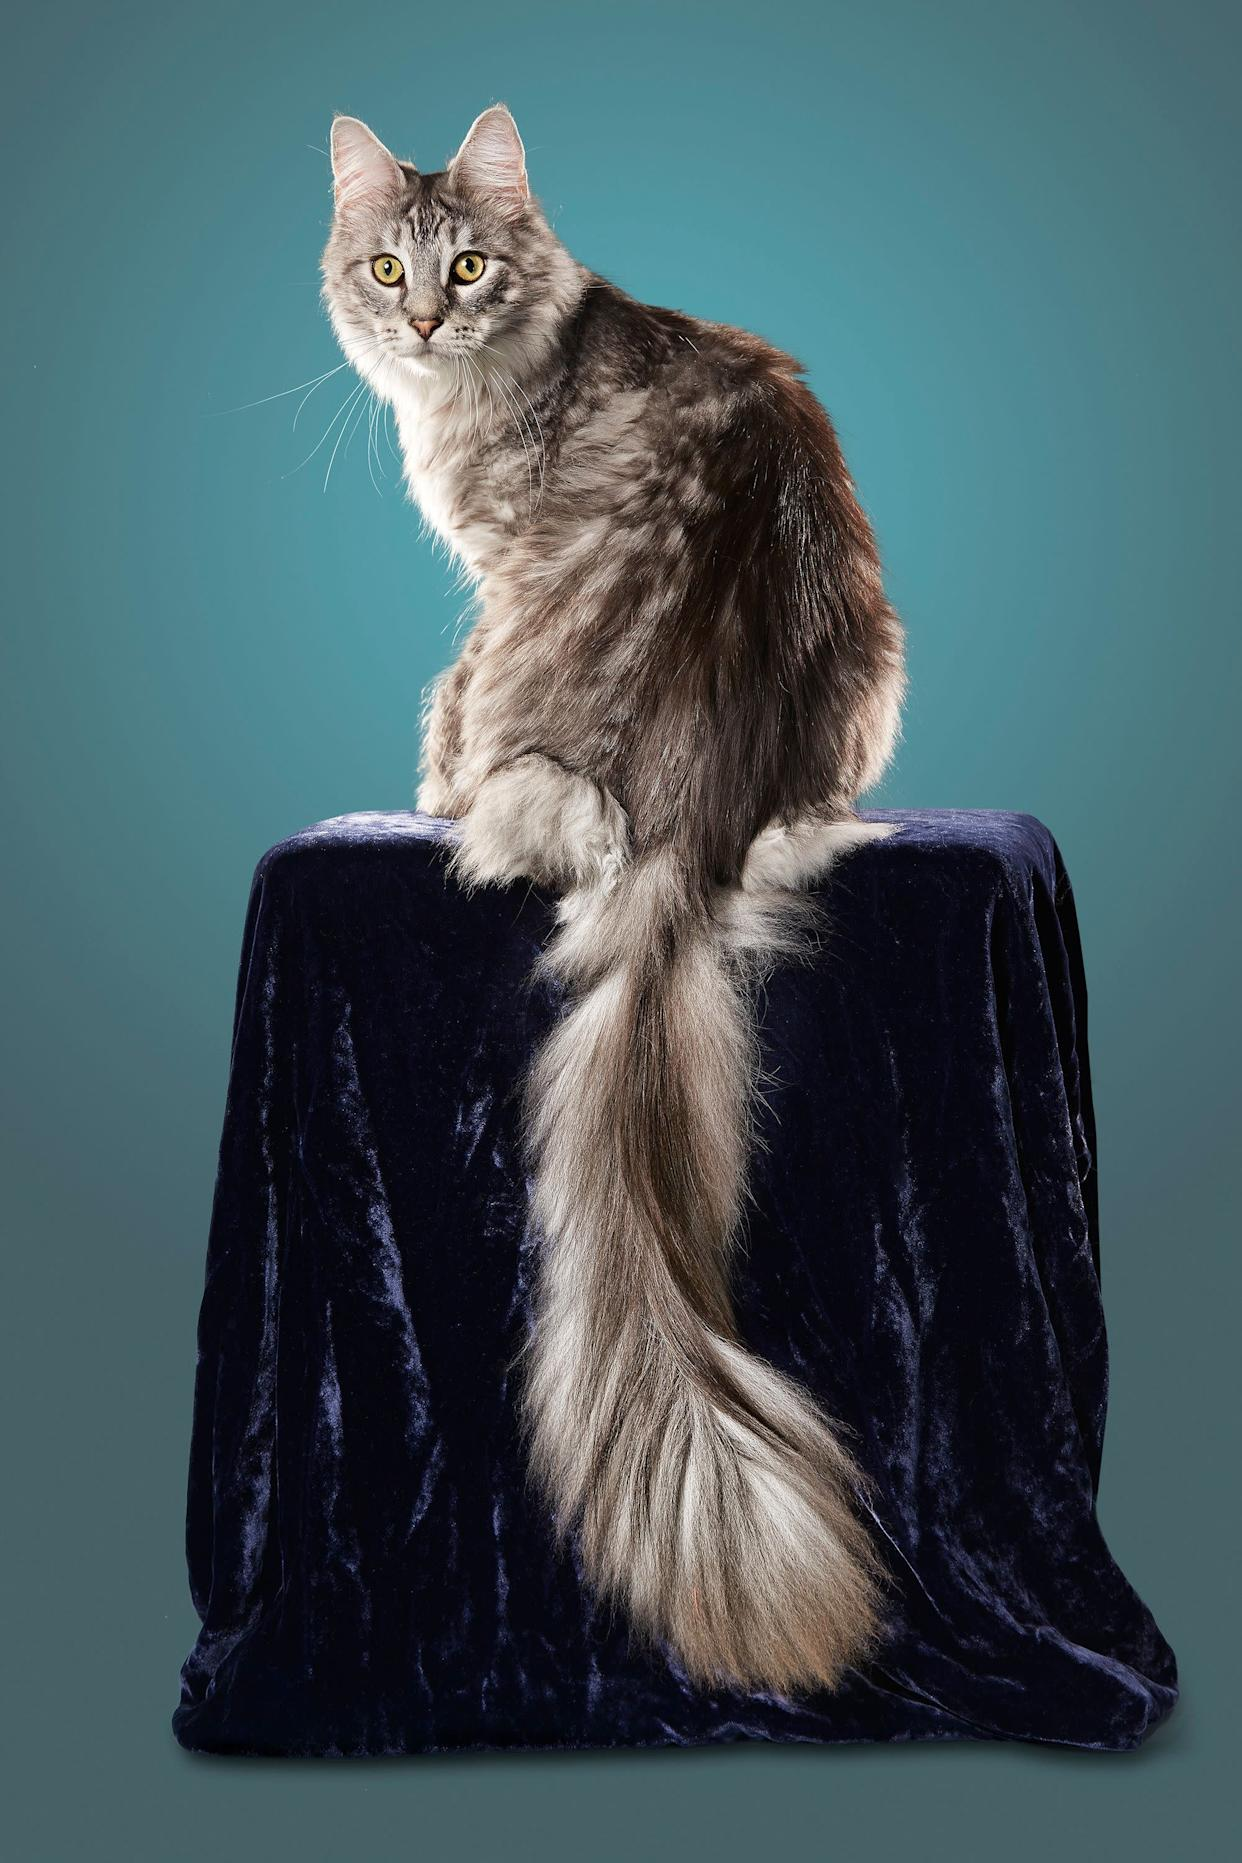 Cygnus, a Maine Coon in Ferndale, Michigan, has a tail measuring 17.58 inches.